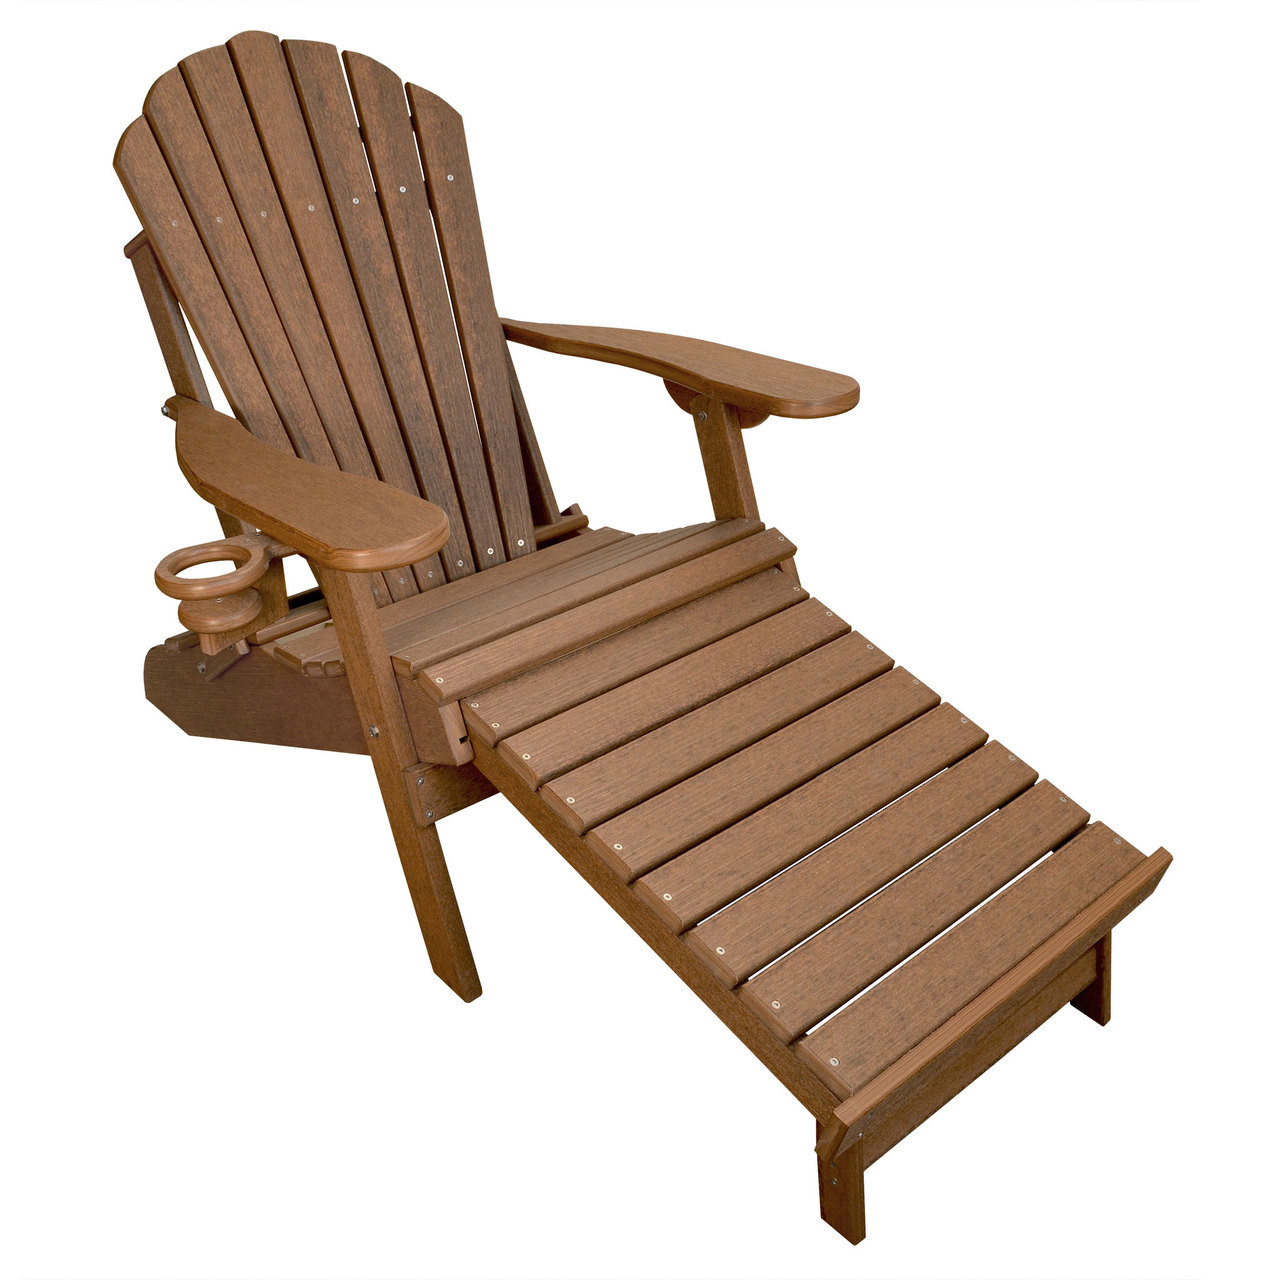 Merveilleux Deluxe Outer Banks Adirondack Chair With Integrated Footrest   Antique  Mahogany